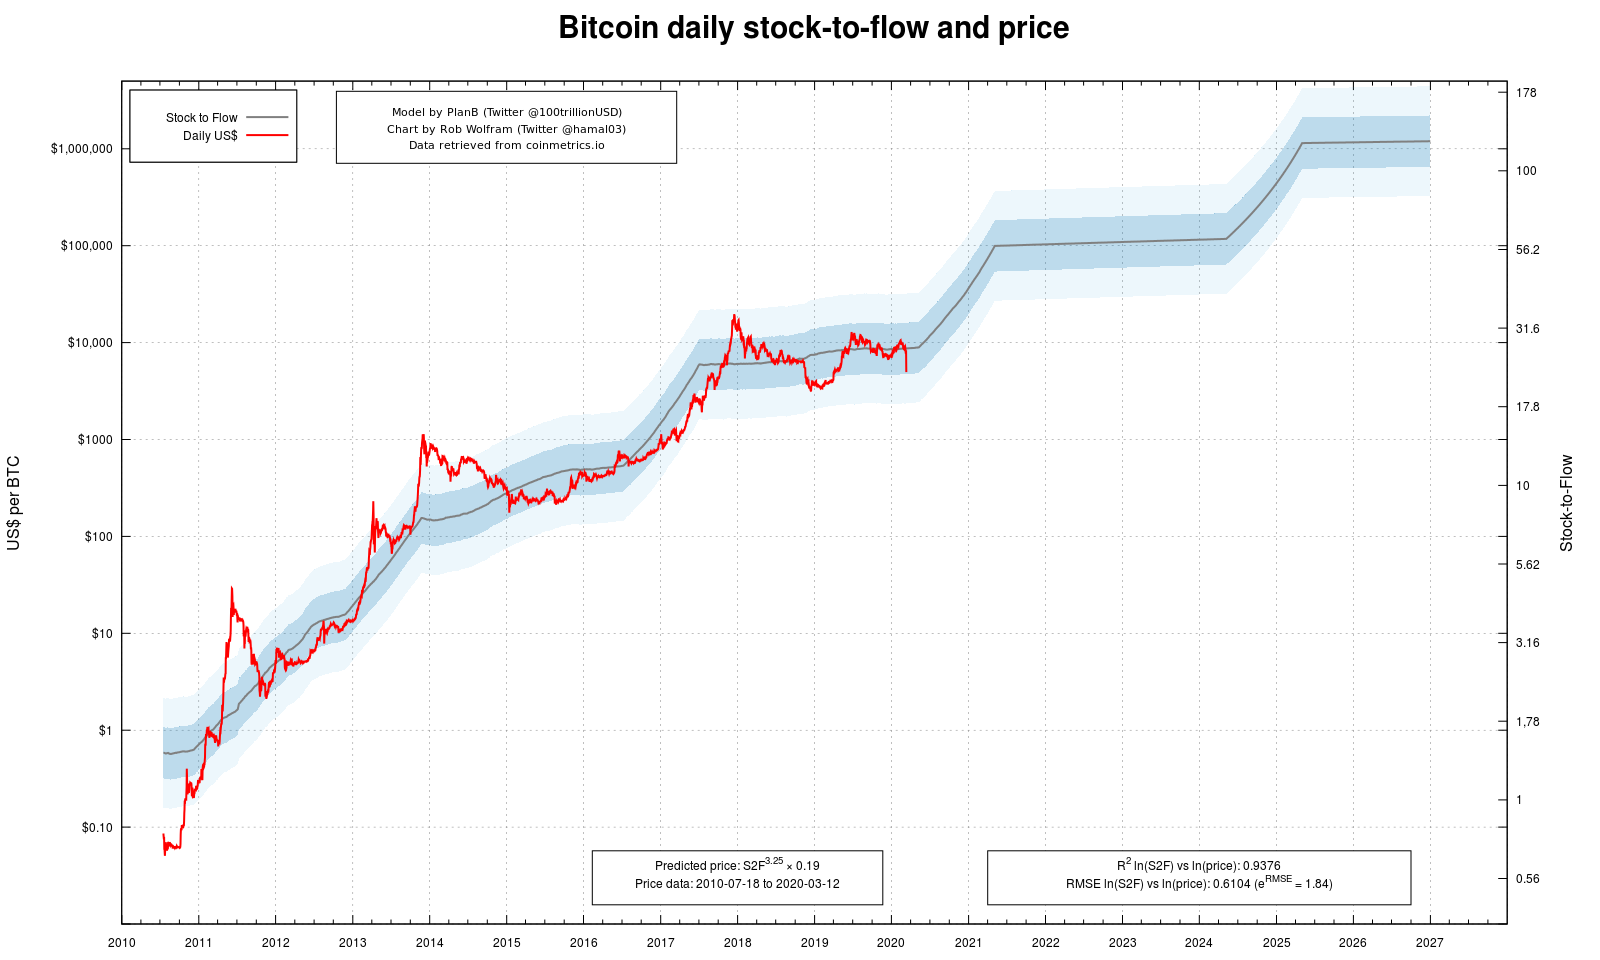 Bitcoin daily stock-to-flow price